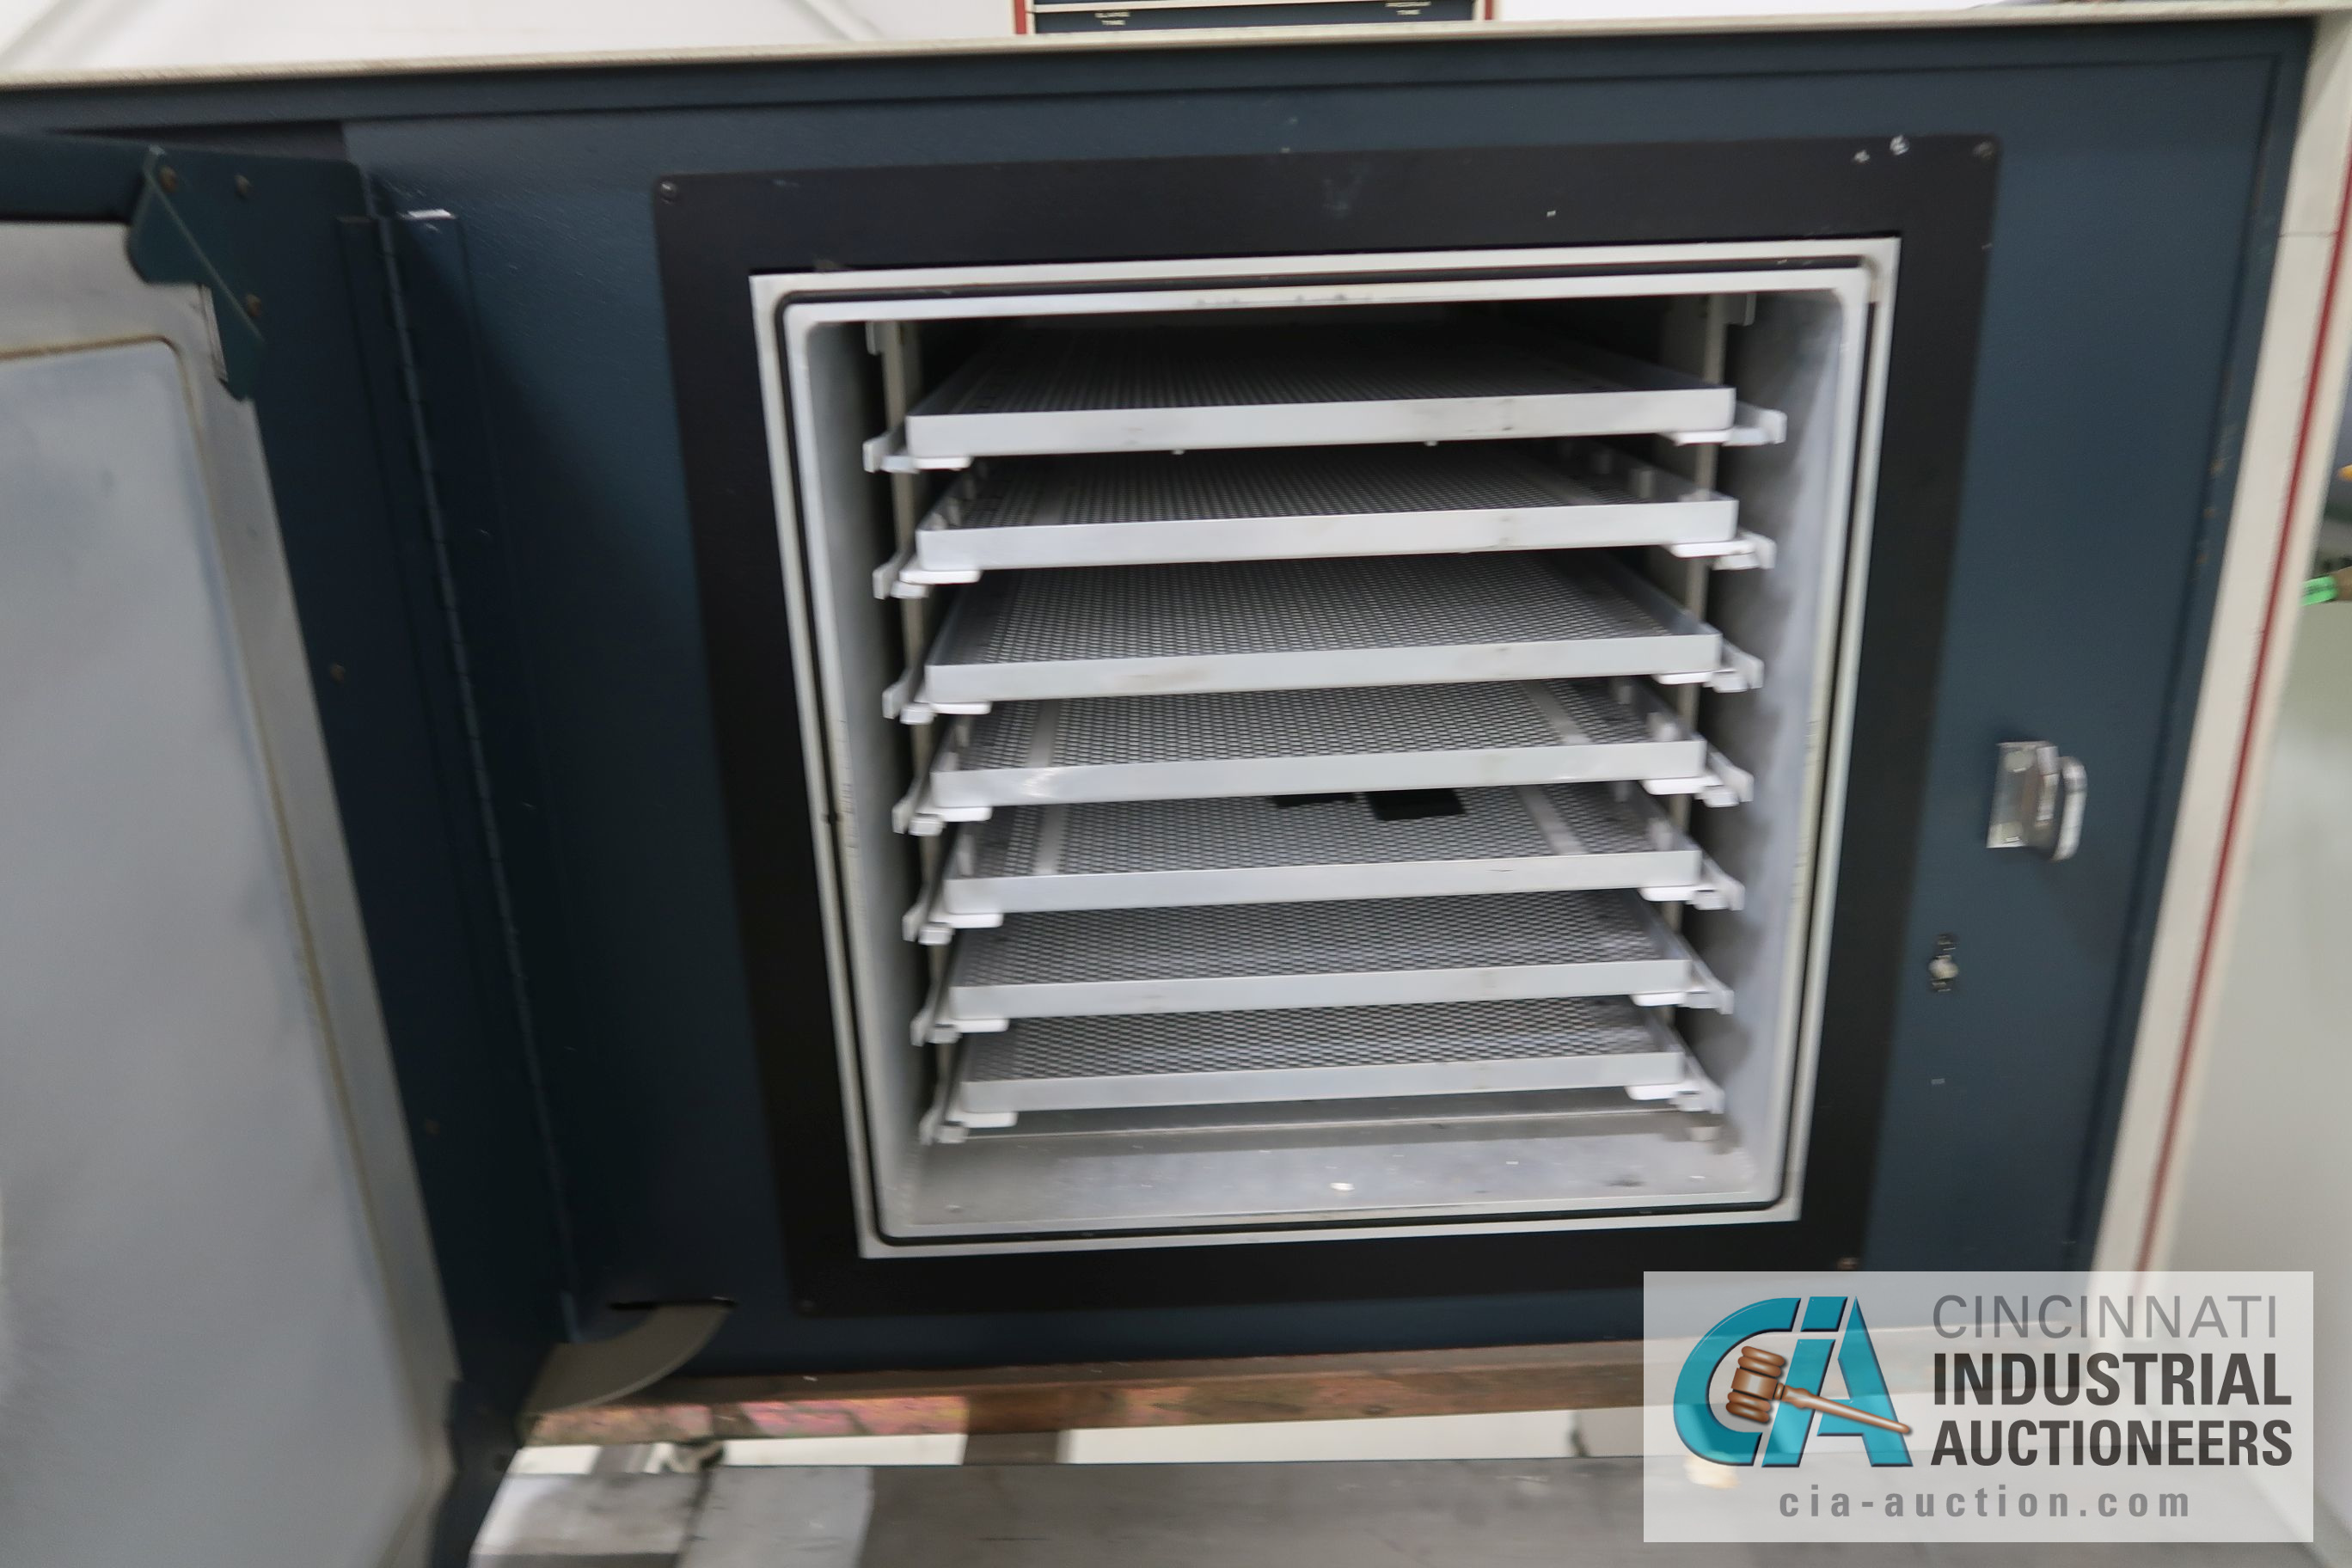 "14"" X 15"" X 2' DEP BRANSON MODEL 415012 PLASTIC PLASMA ADHESION SURFACE TREATER; S/N M961820, WITH - Image 4 of 6"